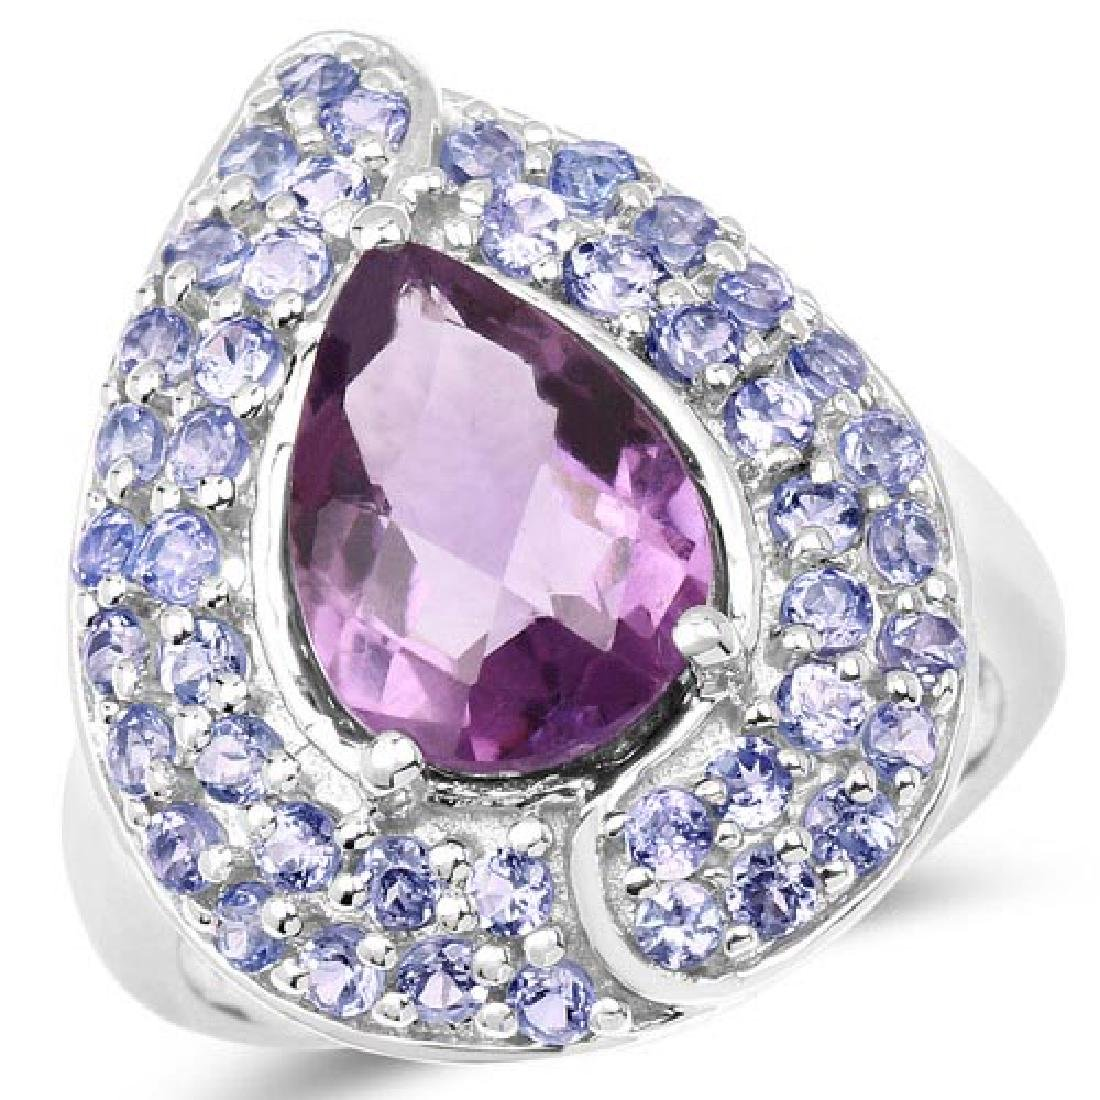 4.02 Carat Genuine Amethyst and Tanzanite .925 Sterling